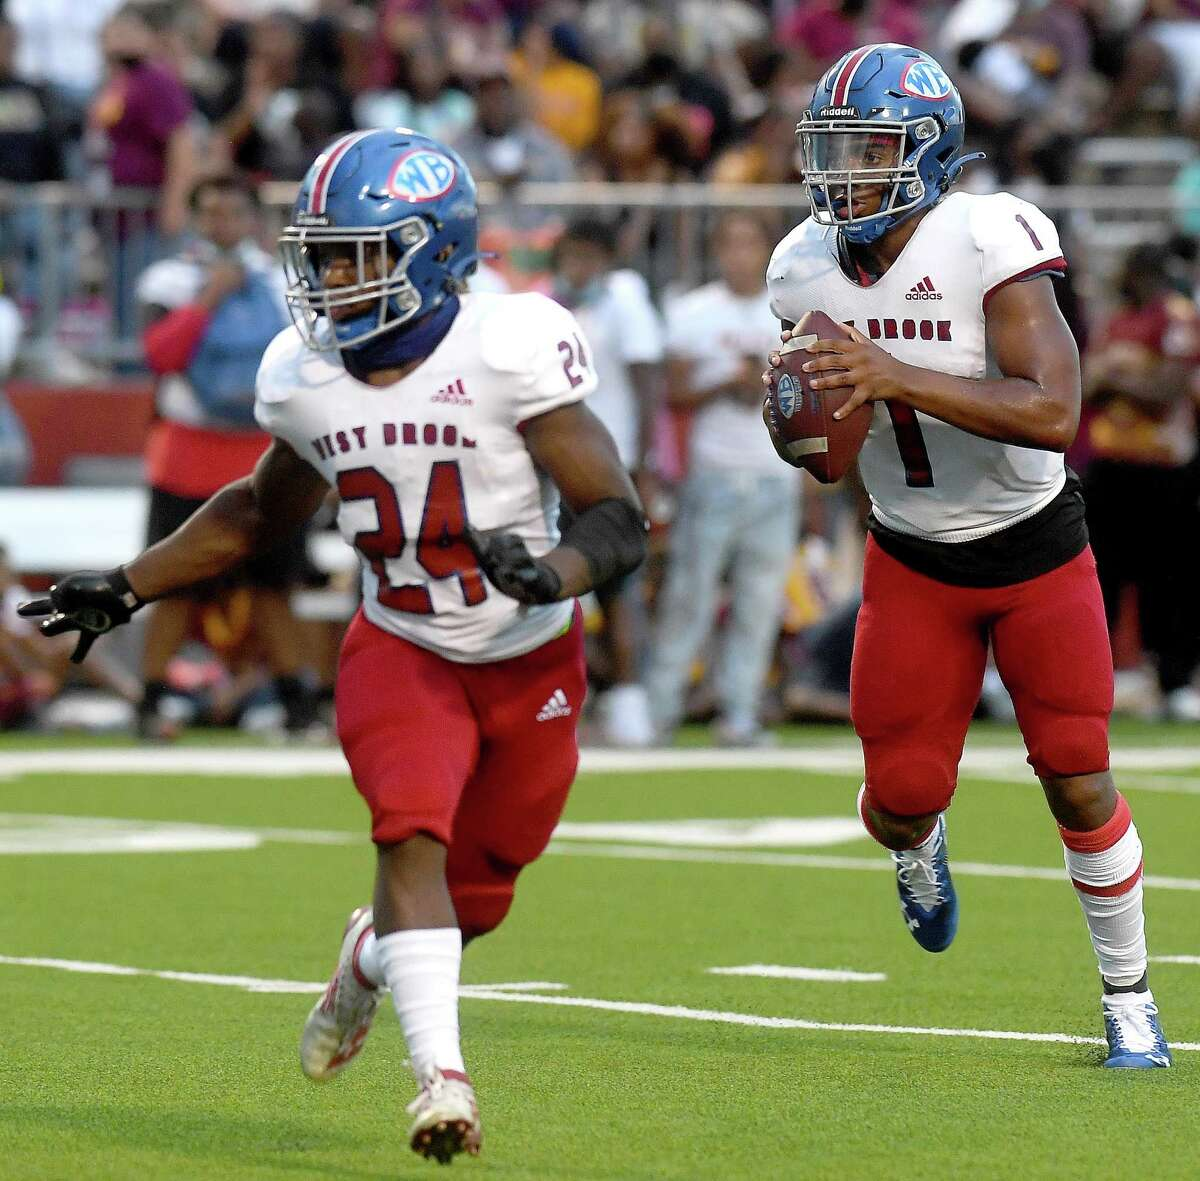 West Brook's Bryce Anderson looks forran open player against Beaumont United during the season opening Alumni Bowl game Friday at BISD Memorial Stadium. Photo made Friday, August 27, 2021 Kim Brent/The Enterprise